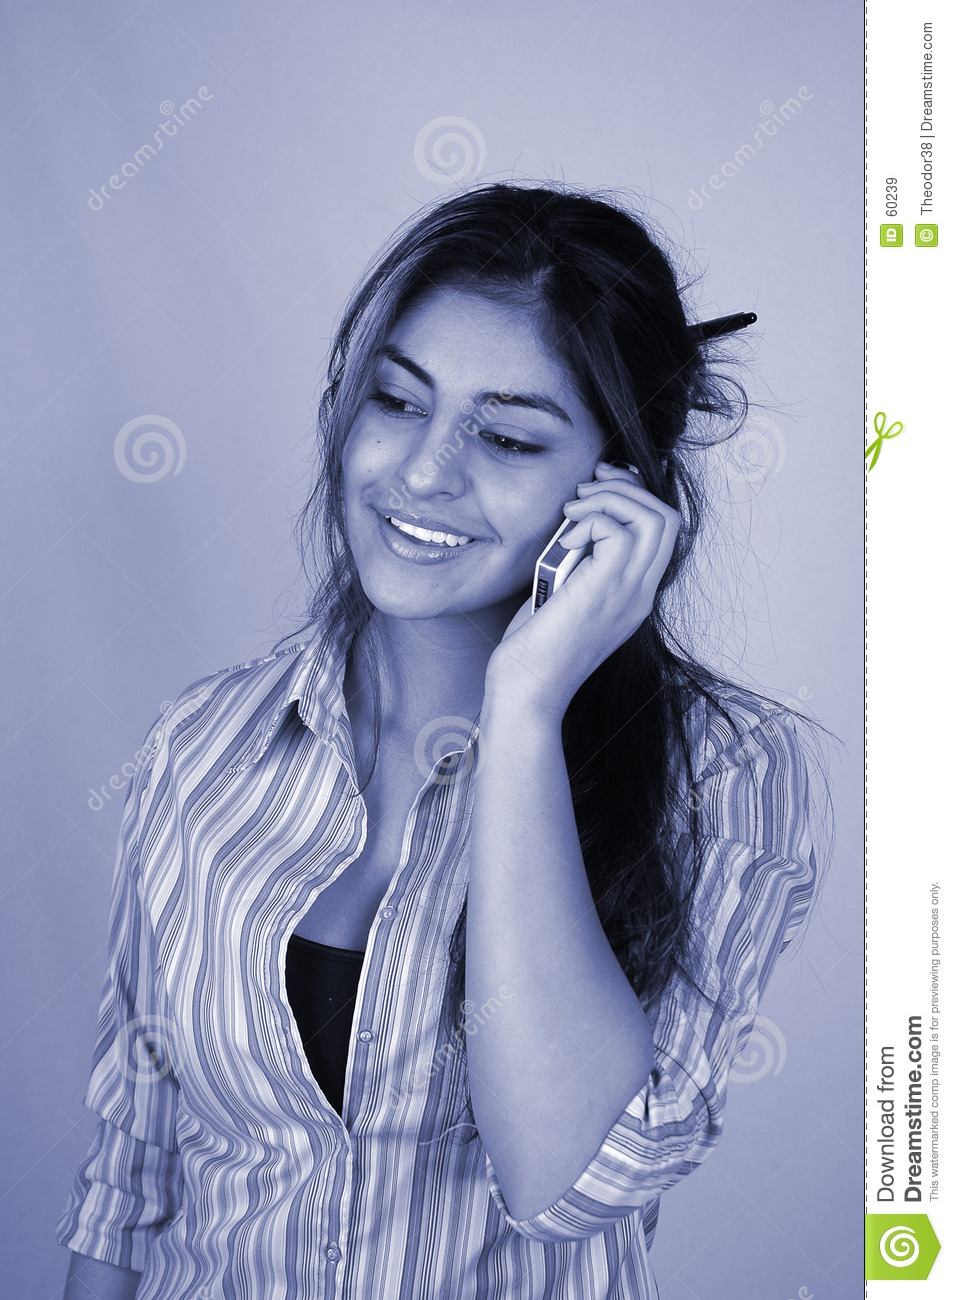 Businesswoman and cellphone-4